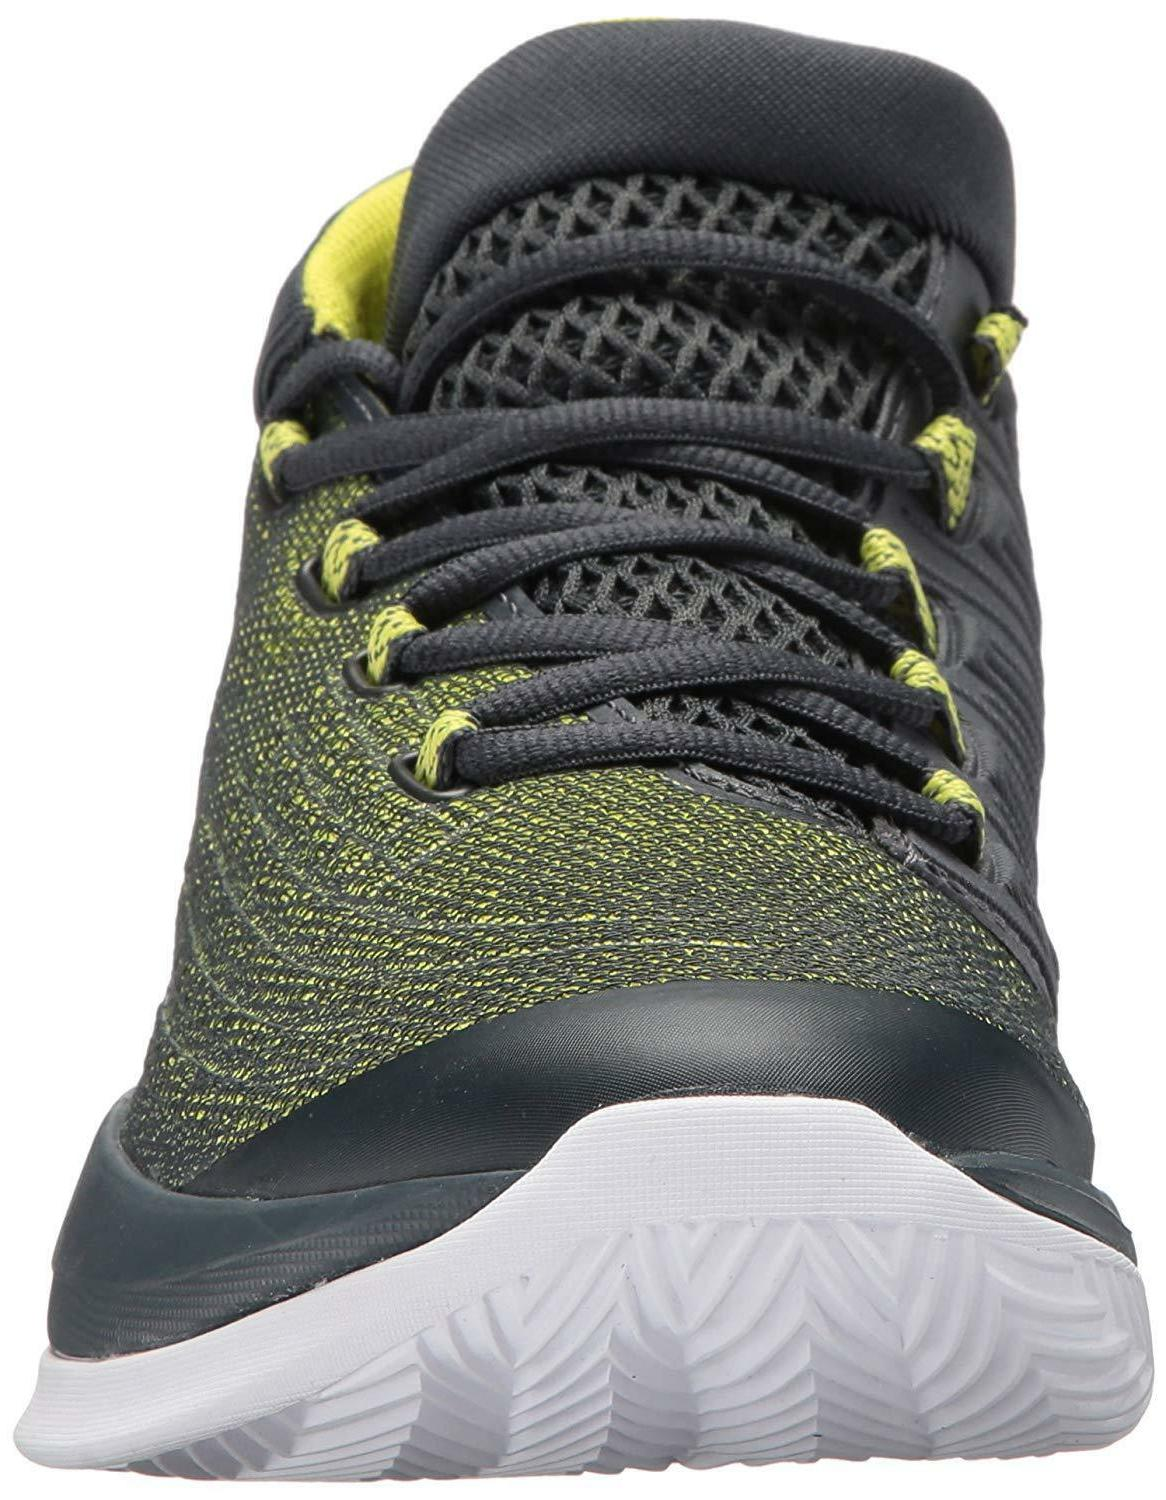 Under Armour Men's NXT Basketball